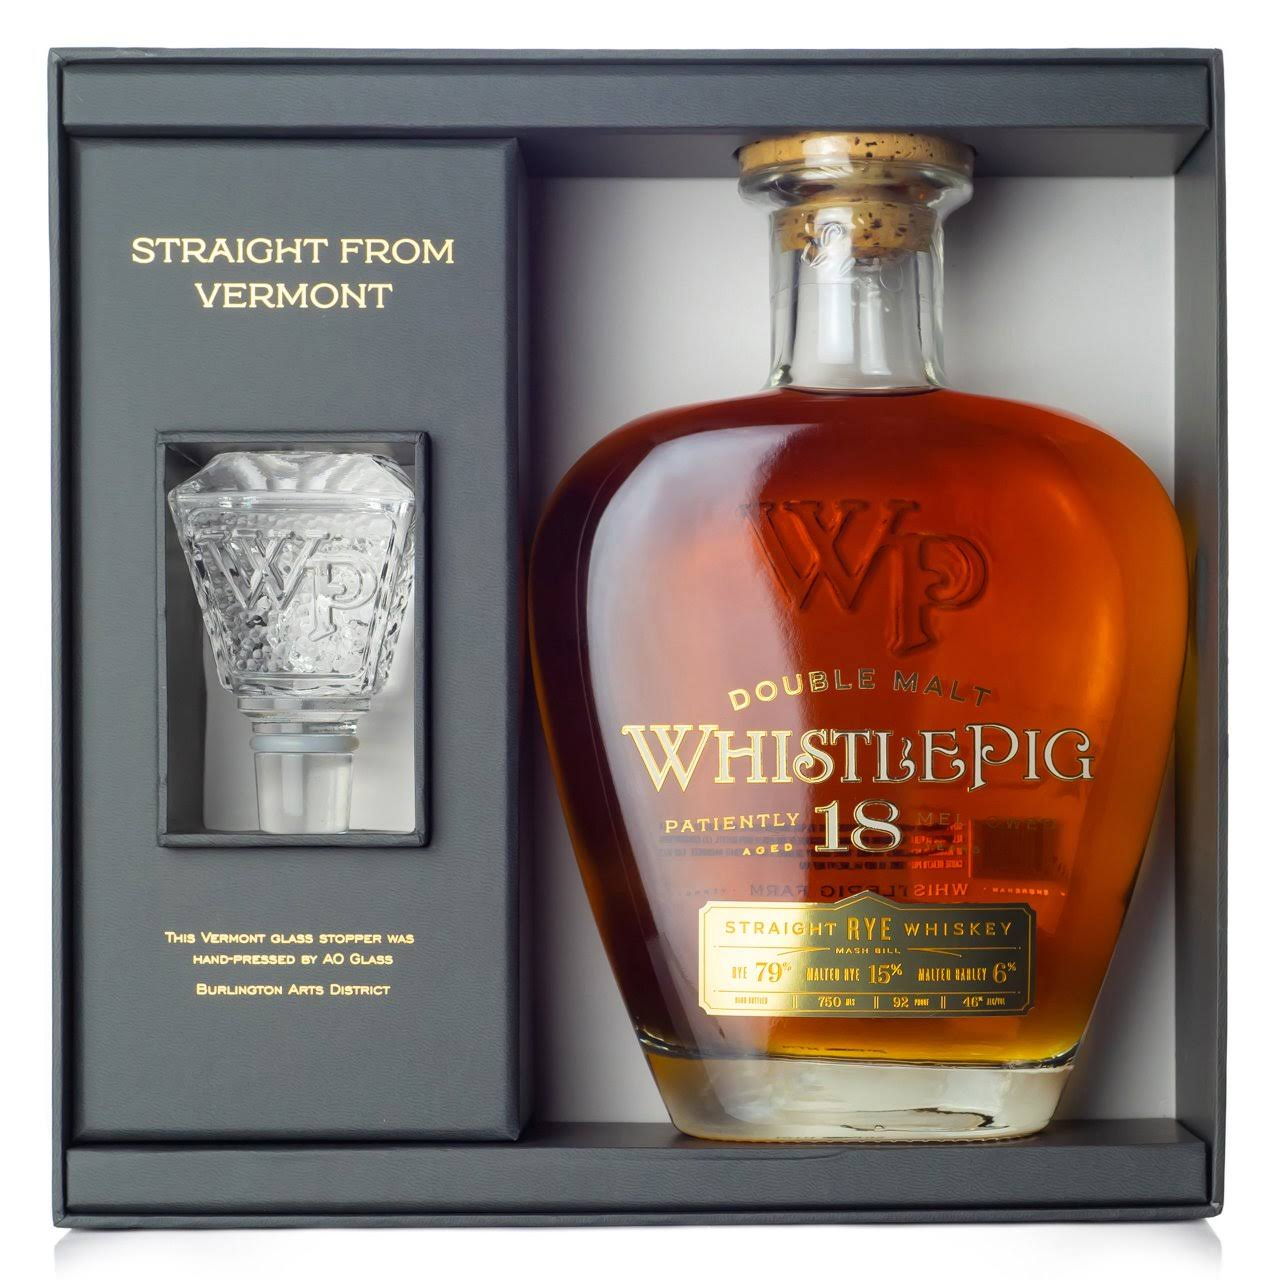 Whistlepig 18 Year Old Straight Rye Whiskey 750ml